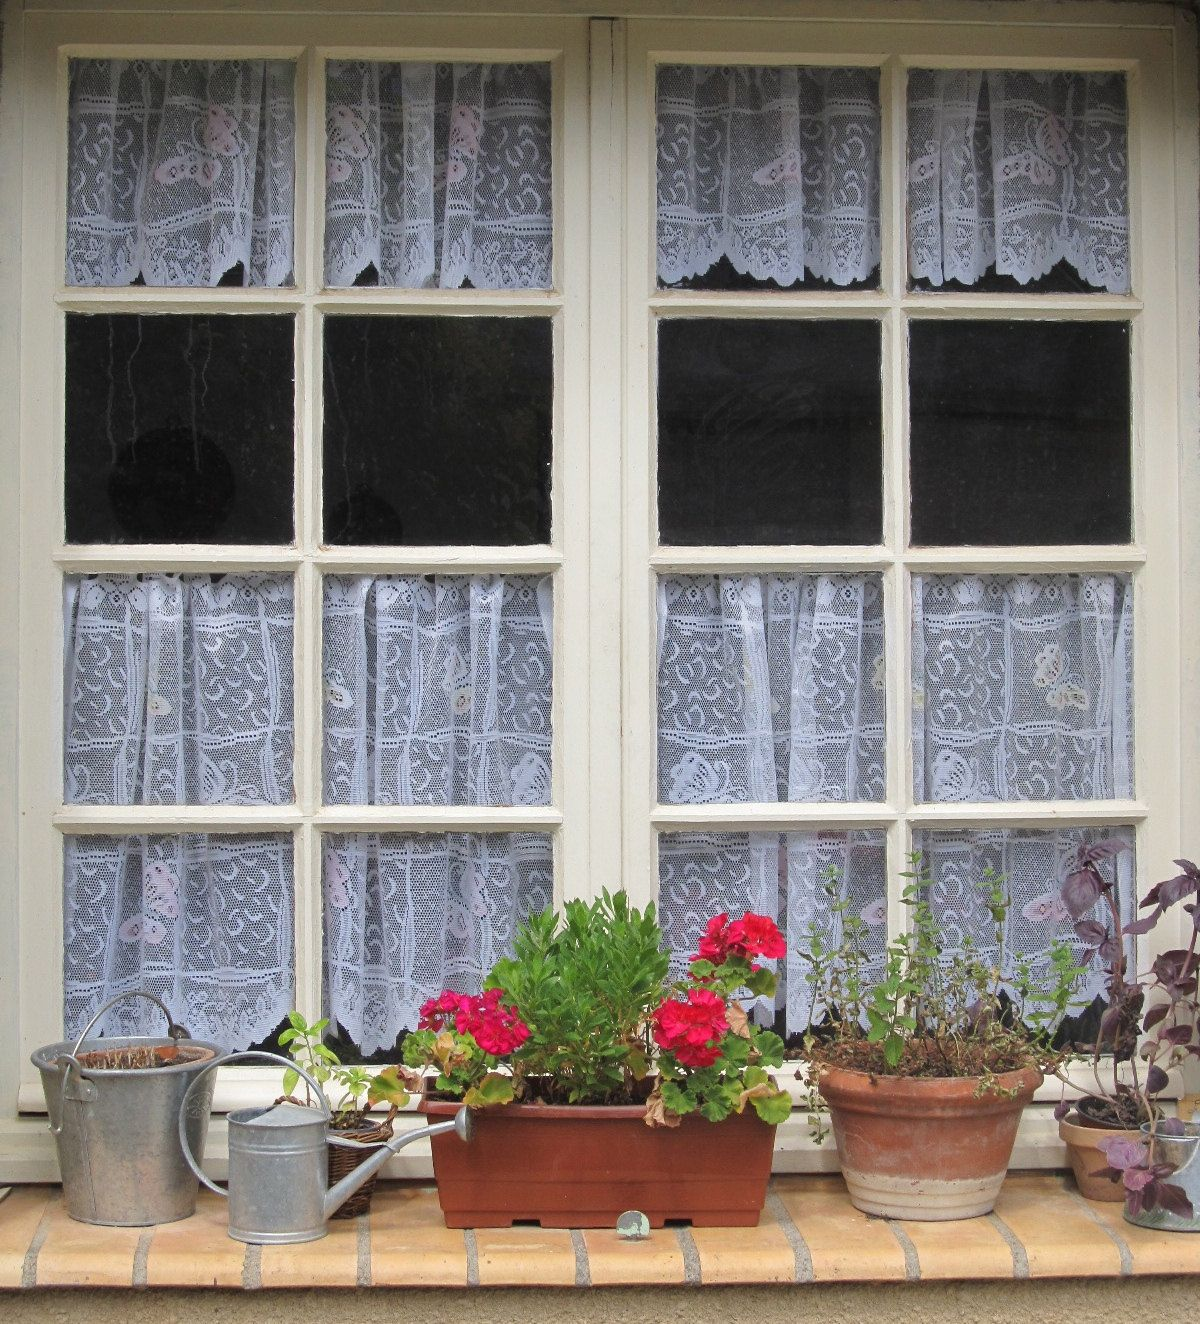 French Lace Kitchen Curtains Outdoor Kitchens Las Vegas Cafe White Curtain For The Style